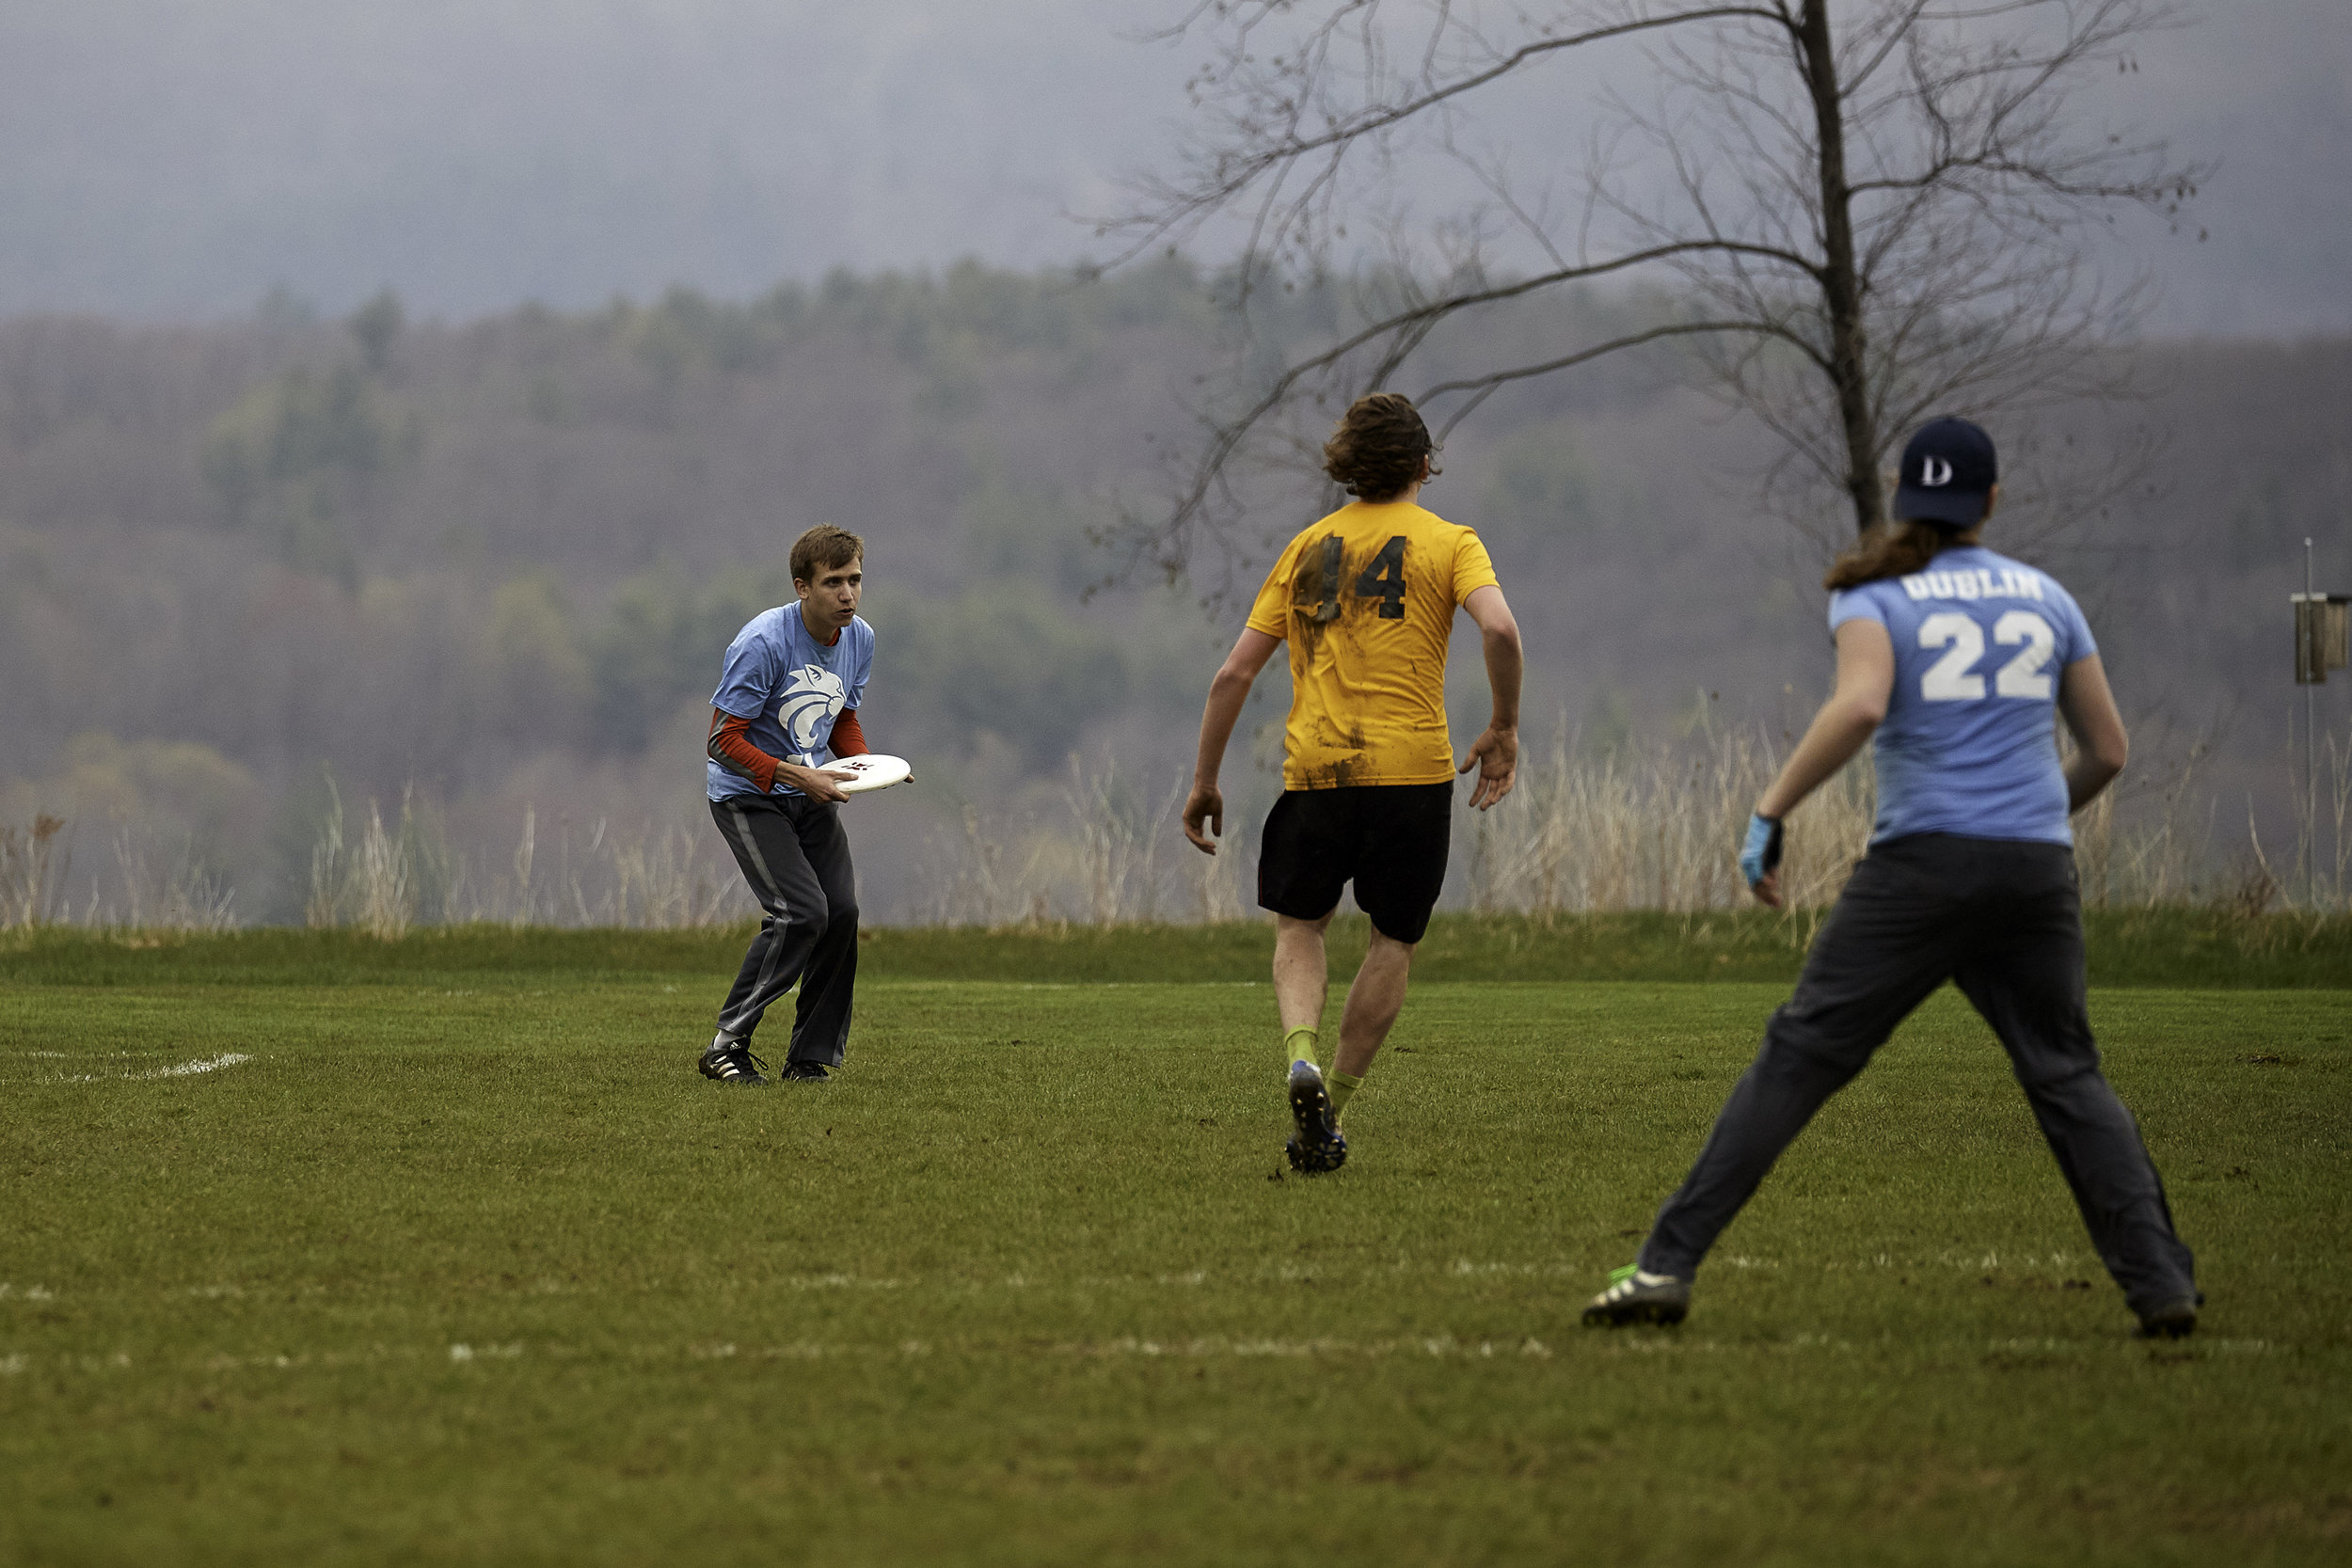 Ultimate Frisbee vs. Eagle Hill School - May 3, 2019 - 188687.jpg